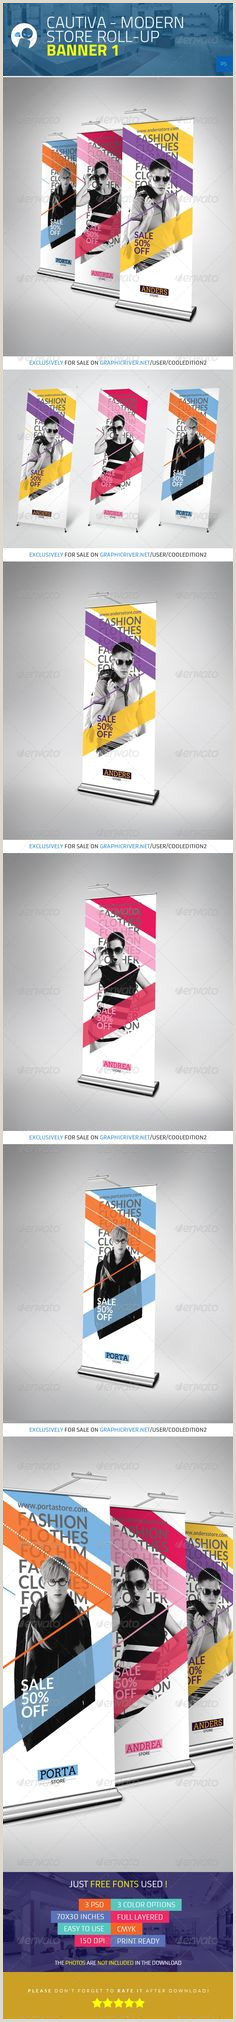 Roll Up Display Stand 40 Mejores Imágenes De Roll Up Banner